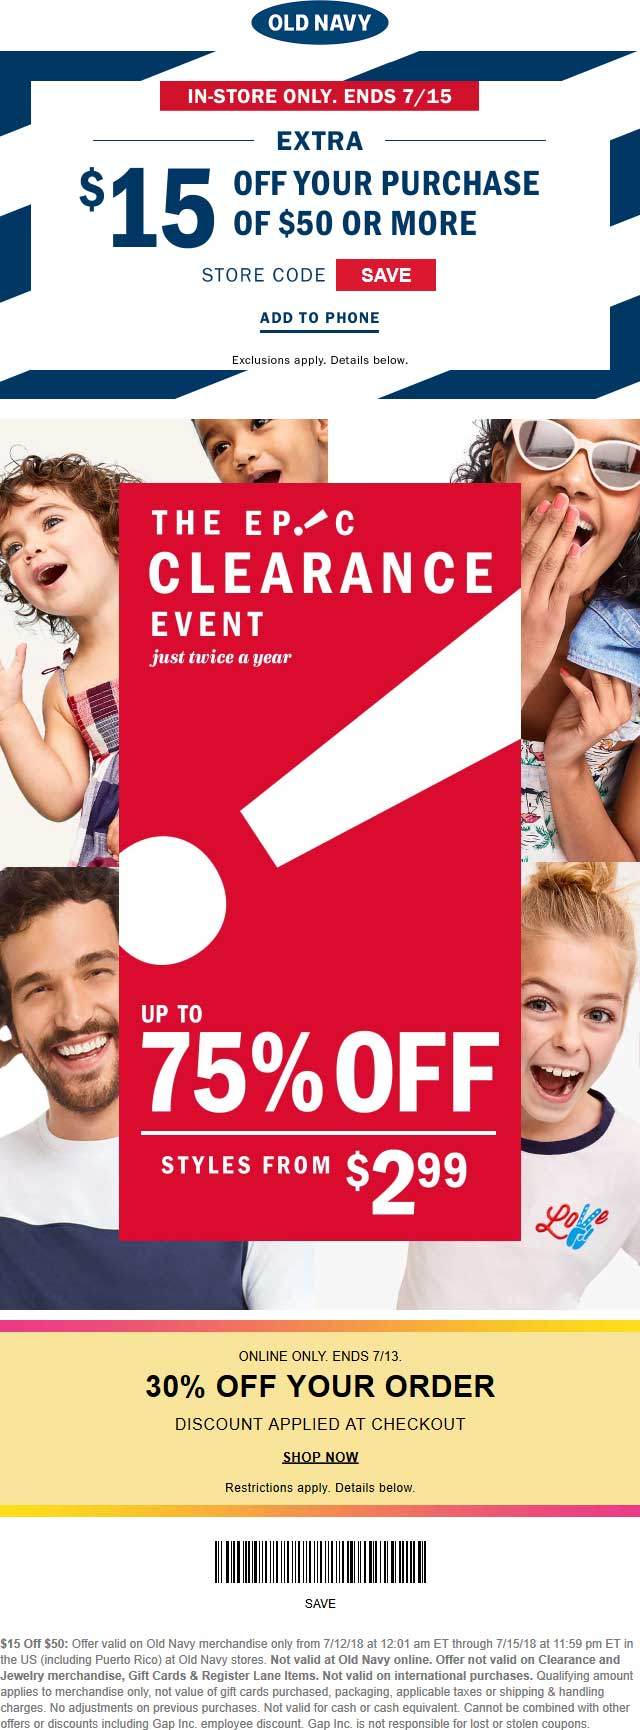 Old Navy Coupon August 2018 $15 off $50 at Old Navy